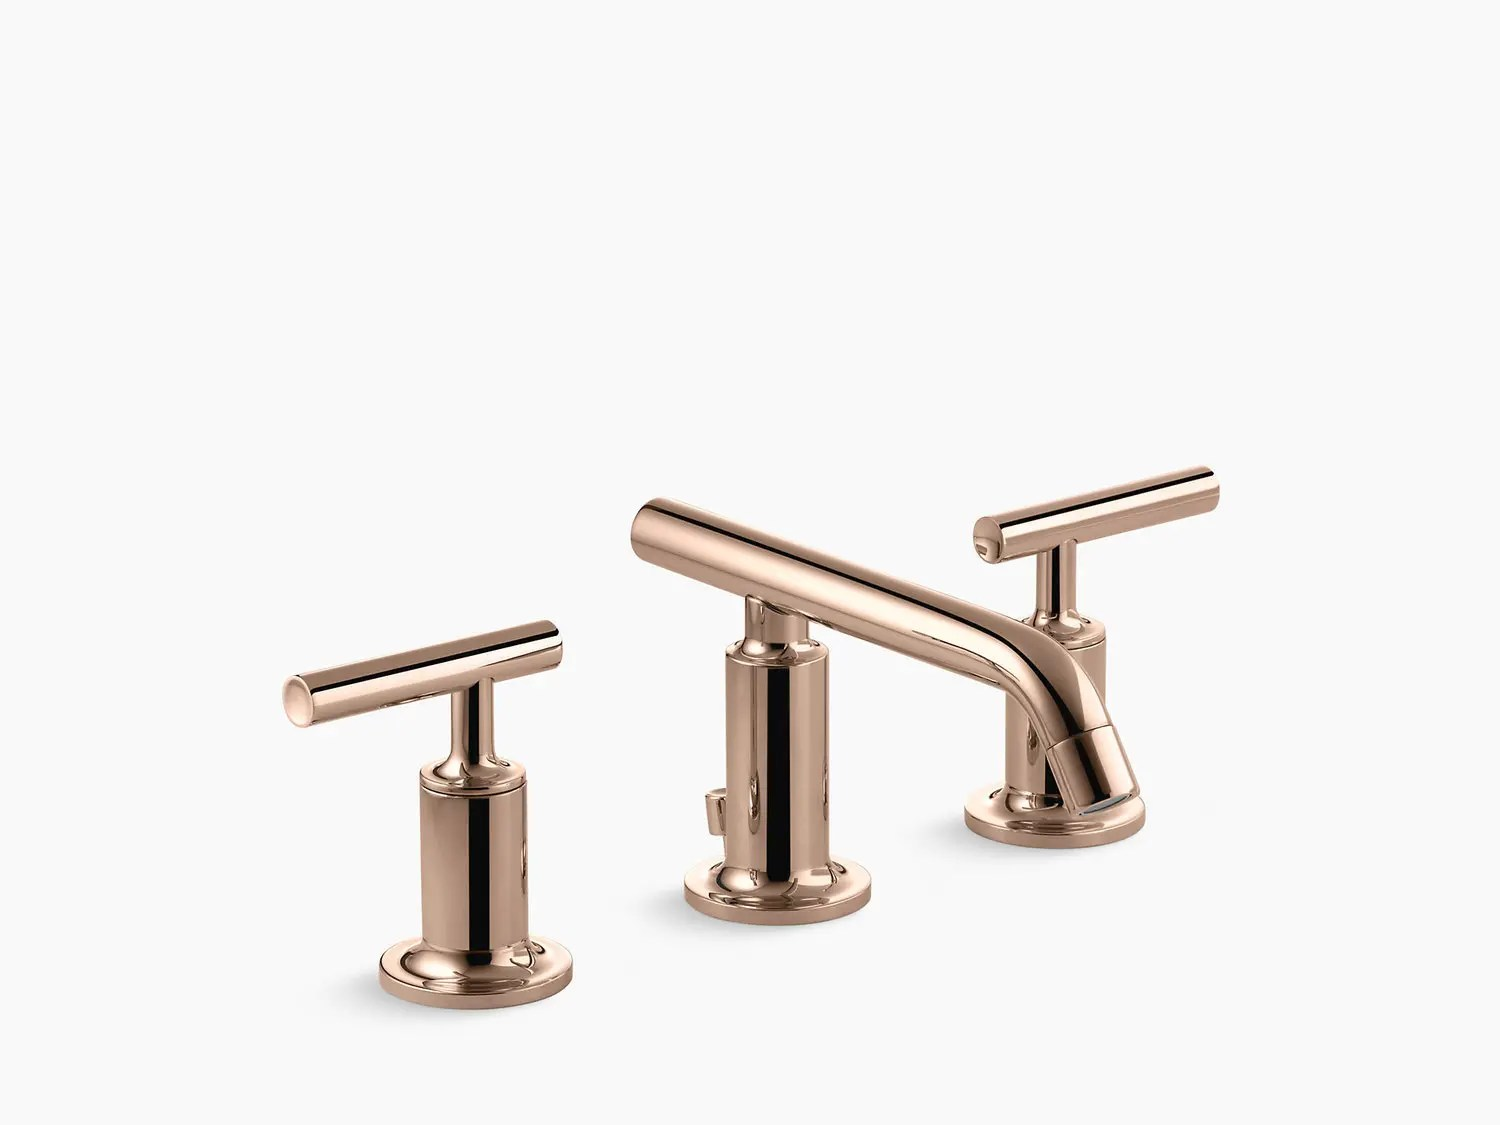 vibrant rose gold widespread bathroom sink faucet with low lever handles and low spout